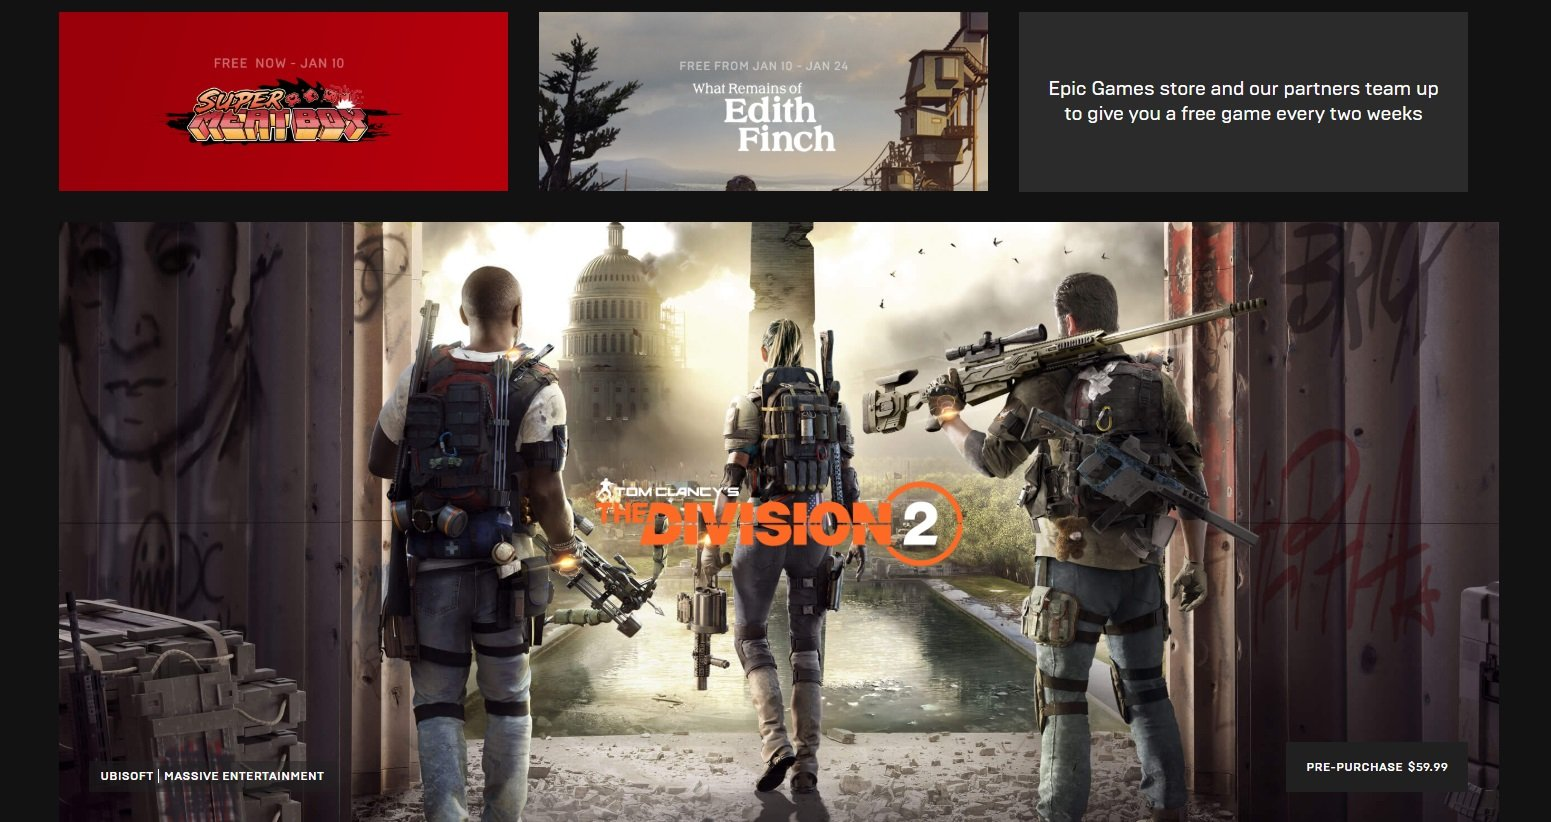 Tom Clancy's The Division 2 on the Epic Games Store